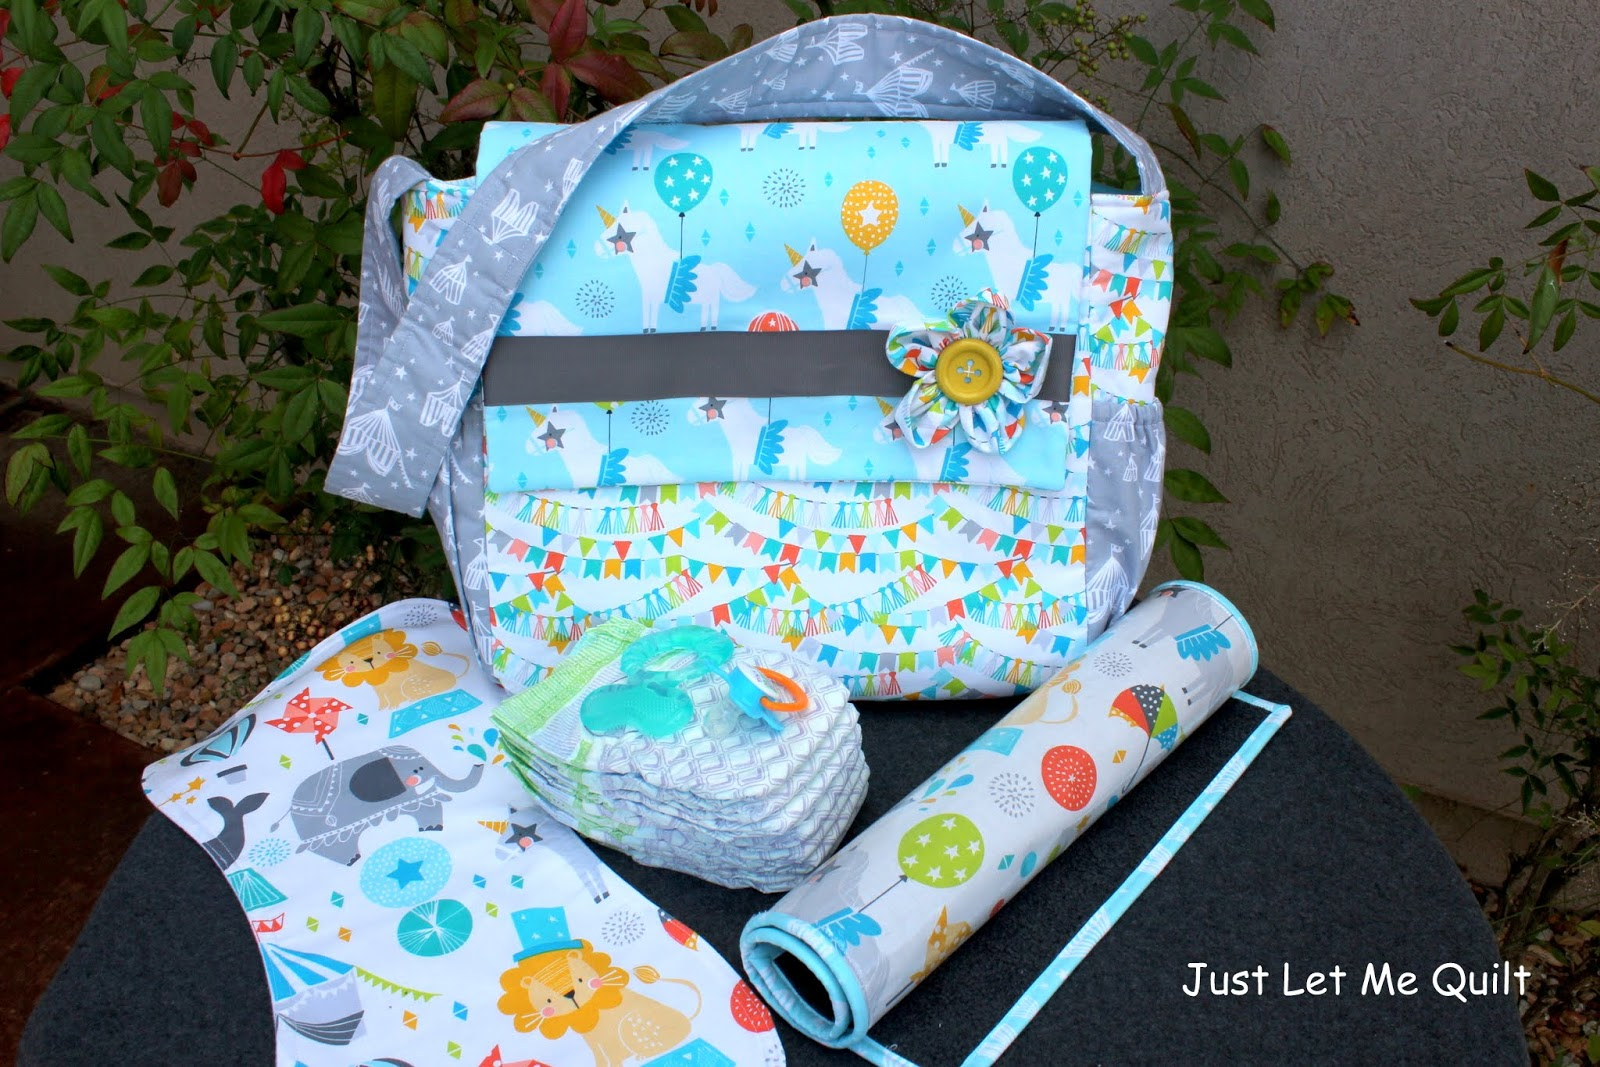 Just Let Me Quilt: Blend Fabric's Caliope Designs In A Diaper Bag